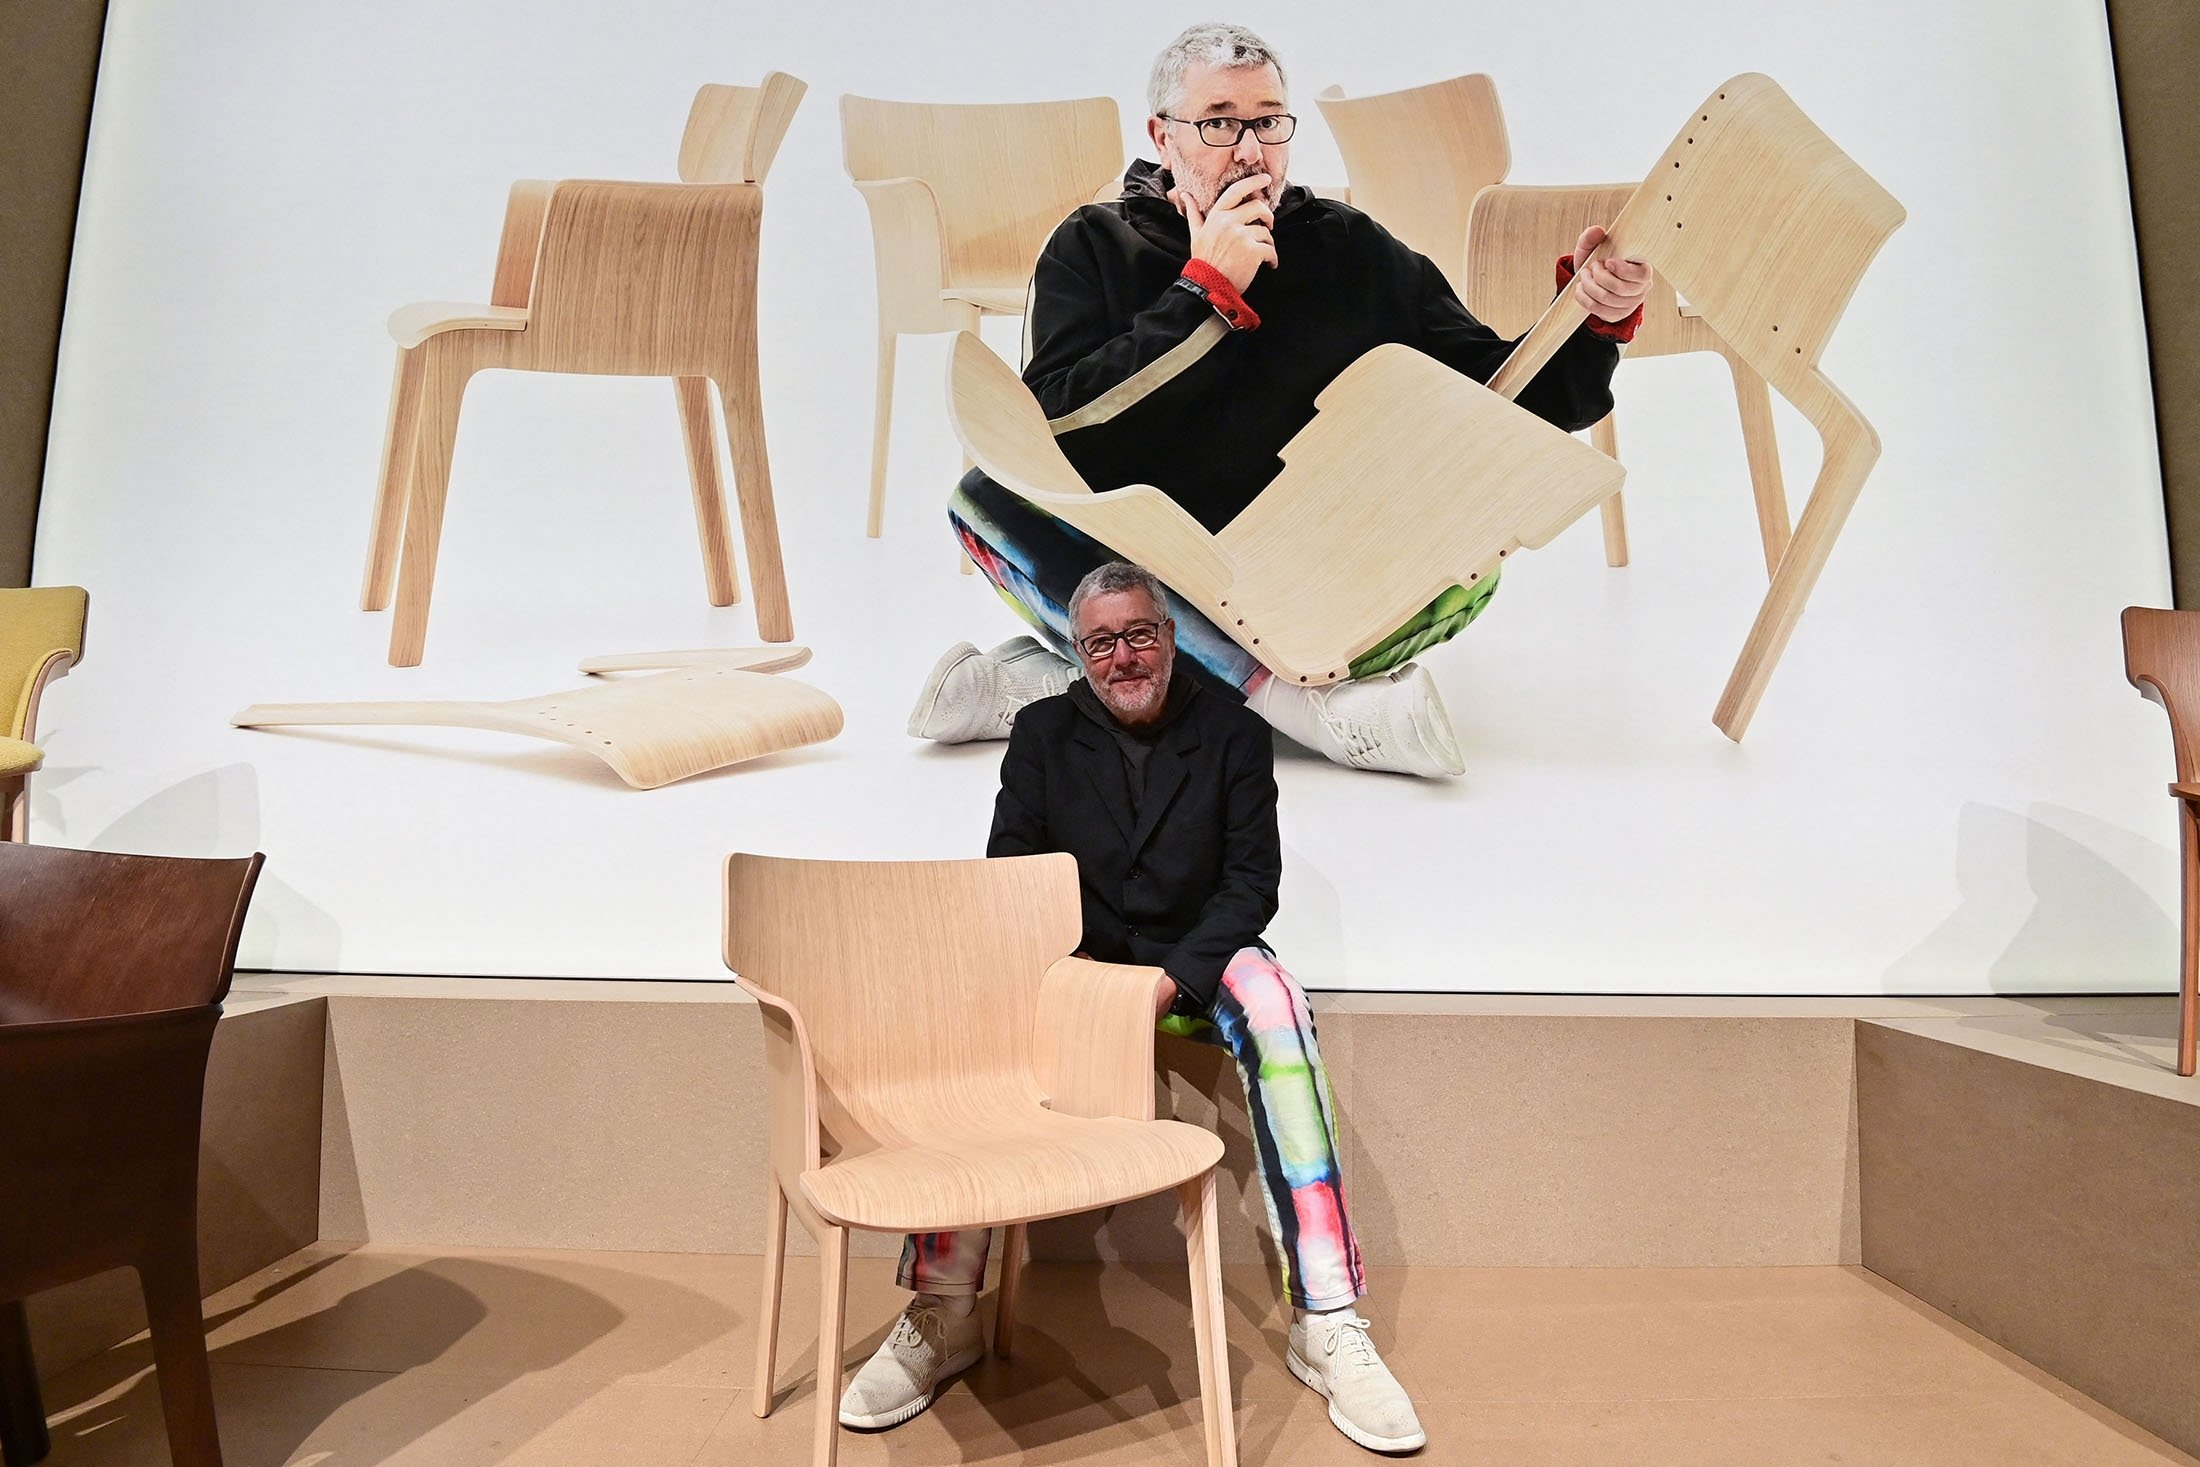 French designer Philippe Starck poses with one of the chairs he designed at the Andreu World stand, at the 2021 Salone del Mobile Milano, in Rho on the outskirts of Milan, Italy, Sept. 7, 2021. (AFP Photo)